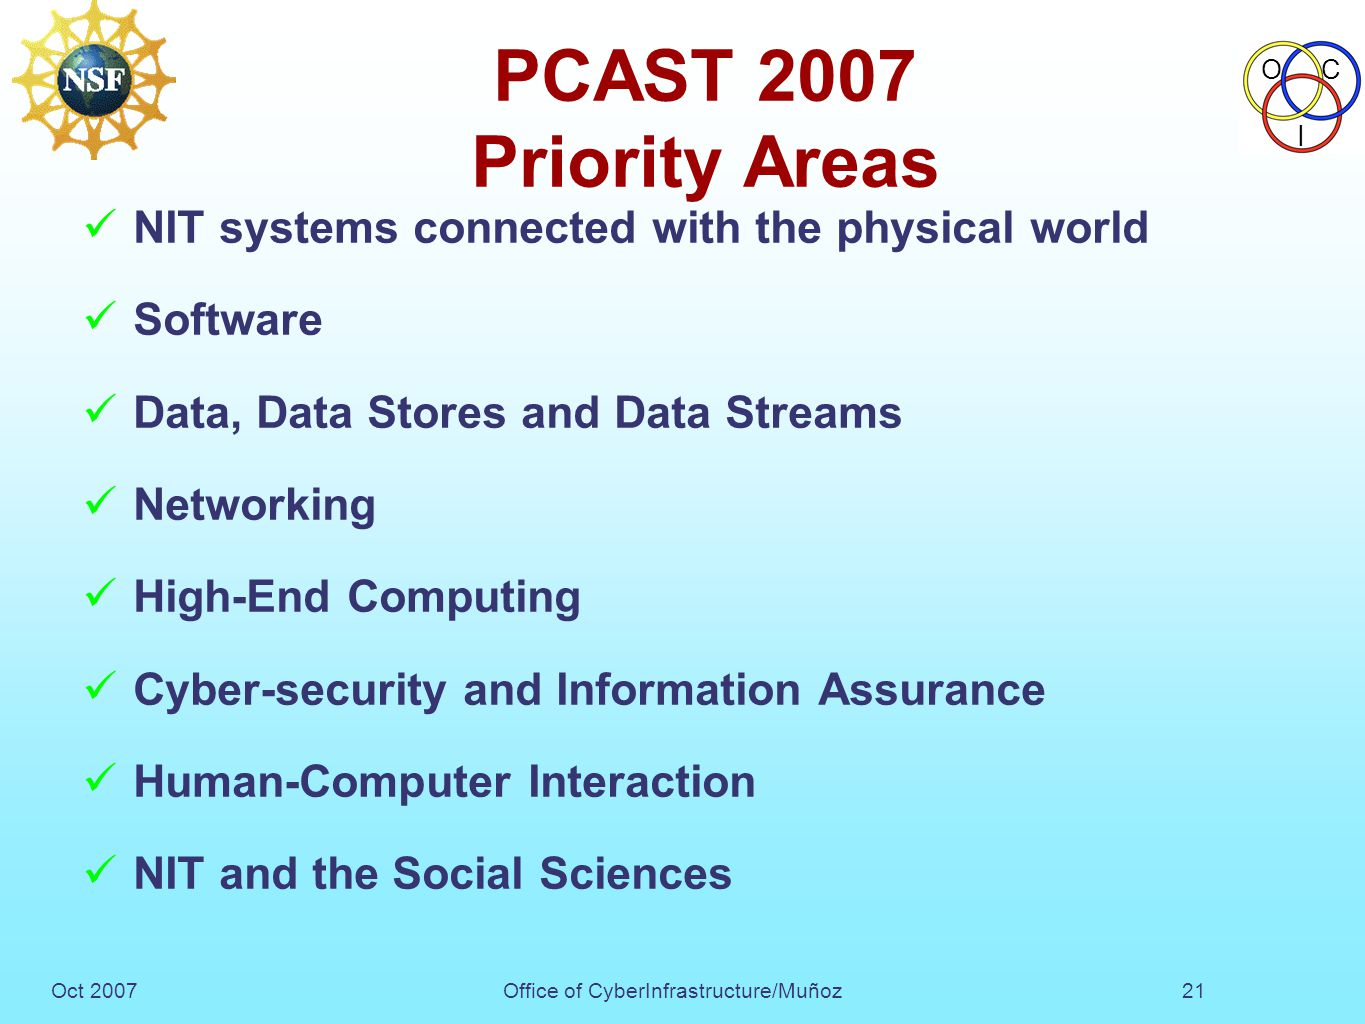 Oct 2007Office of CyberInfrastructure/Muñoz OC I 21 PCAST 2007 Priority Areas NIT systems connected with the physical world Software Data, Data Stores and Data Streams Networking High-End Computing Cyber-security and Information Assurance Human-Computer Interaction NIT and the Social Sciences